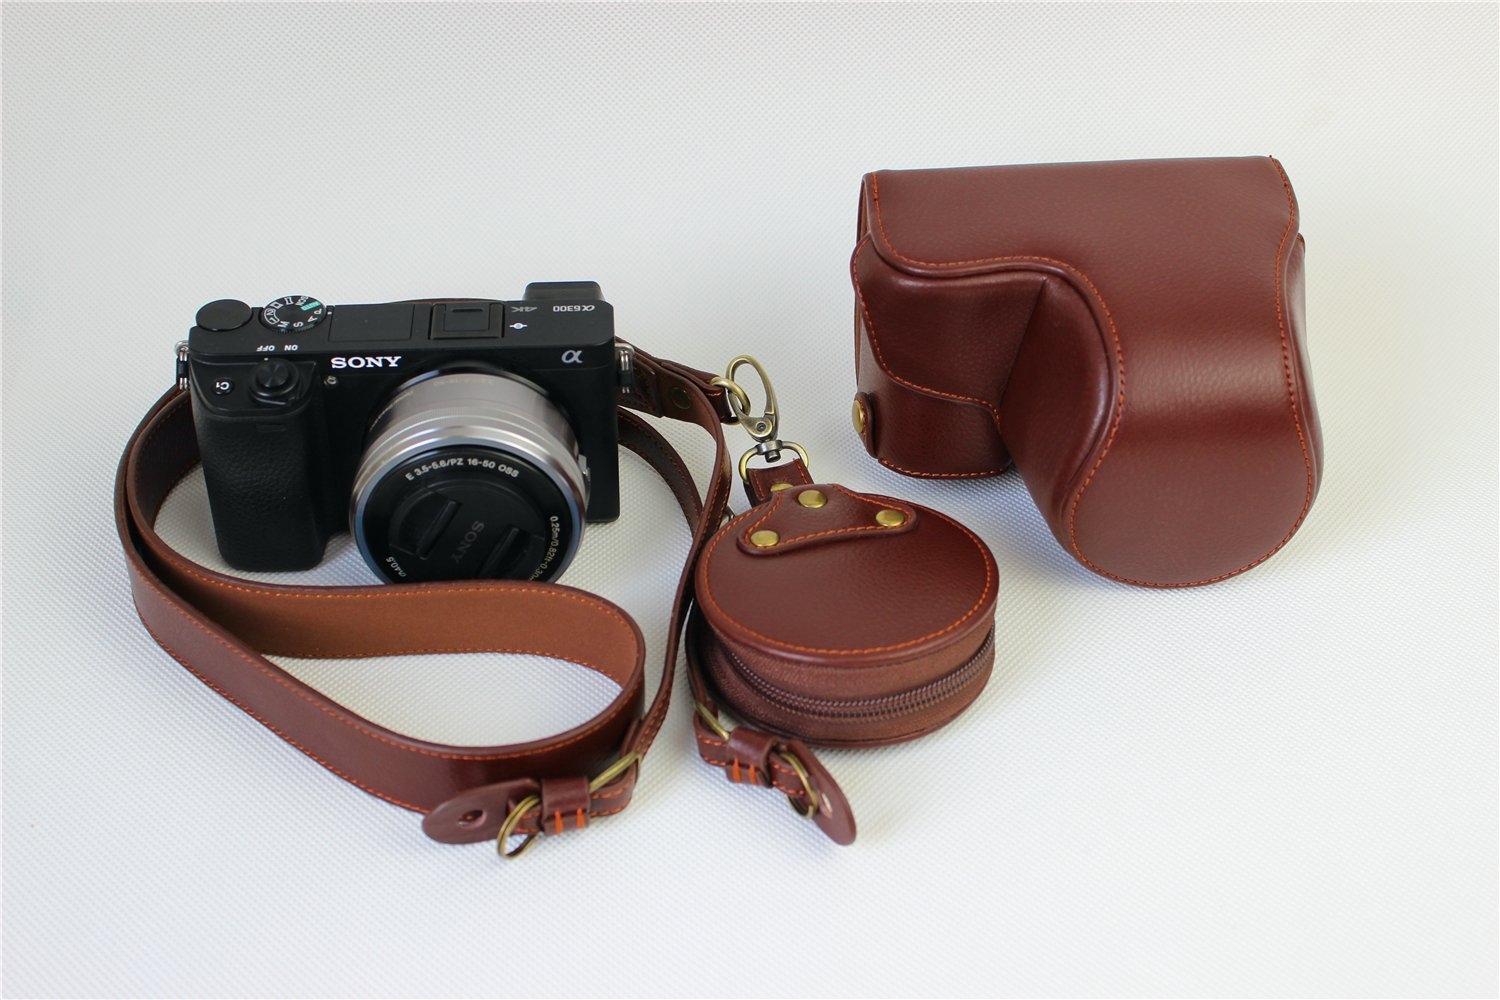 6D Mark II Camera Case LavaBrown BolinUS Handmade Genuine Real Leather Half Camera Case Bag Cover for Canon Eos 6D Mark II Camera Bottom Opening Version Hand Strap